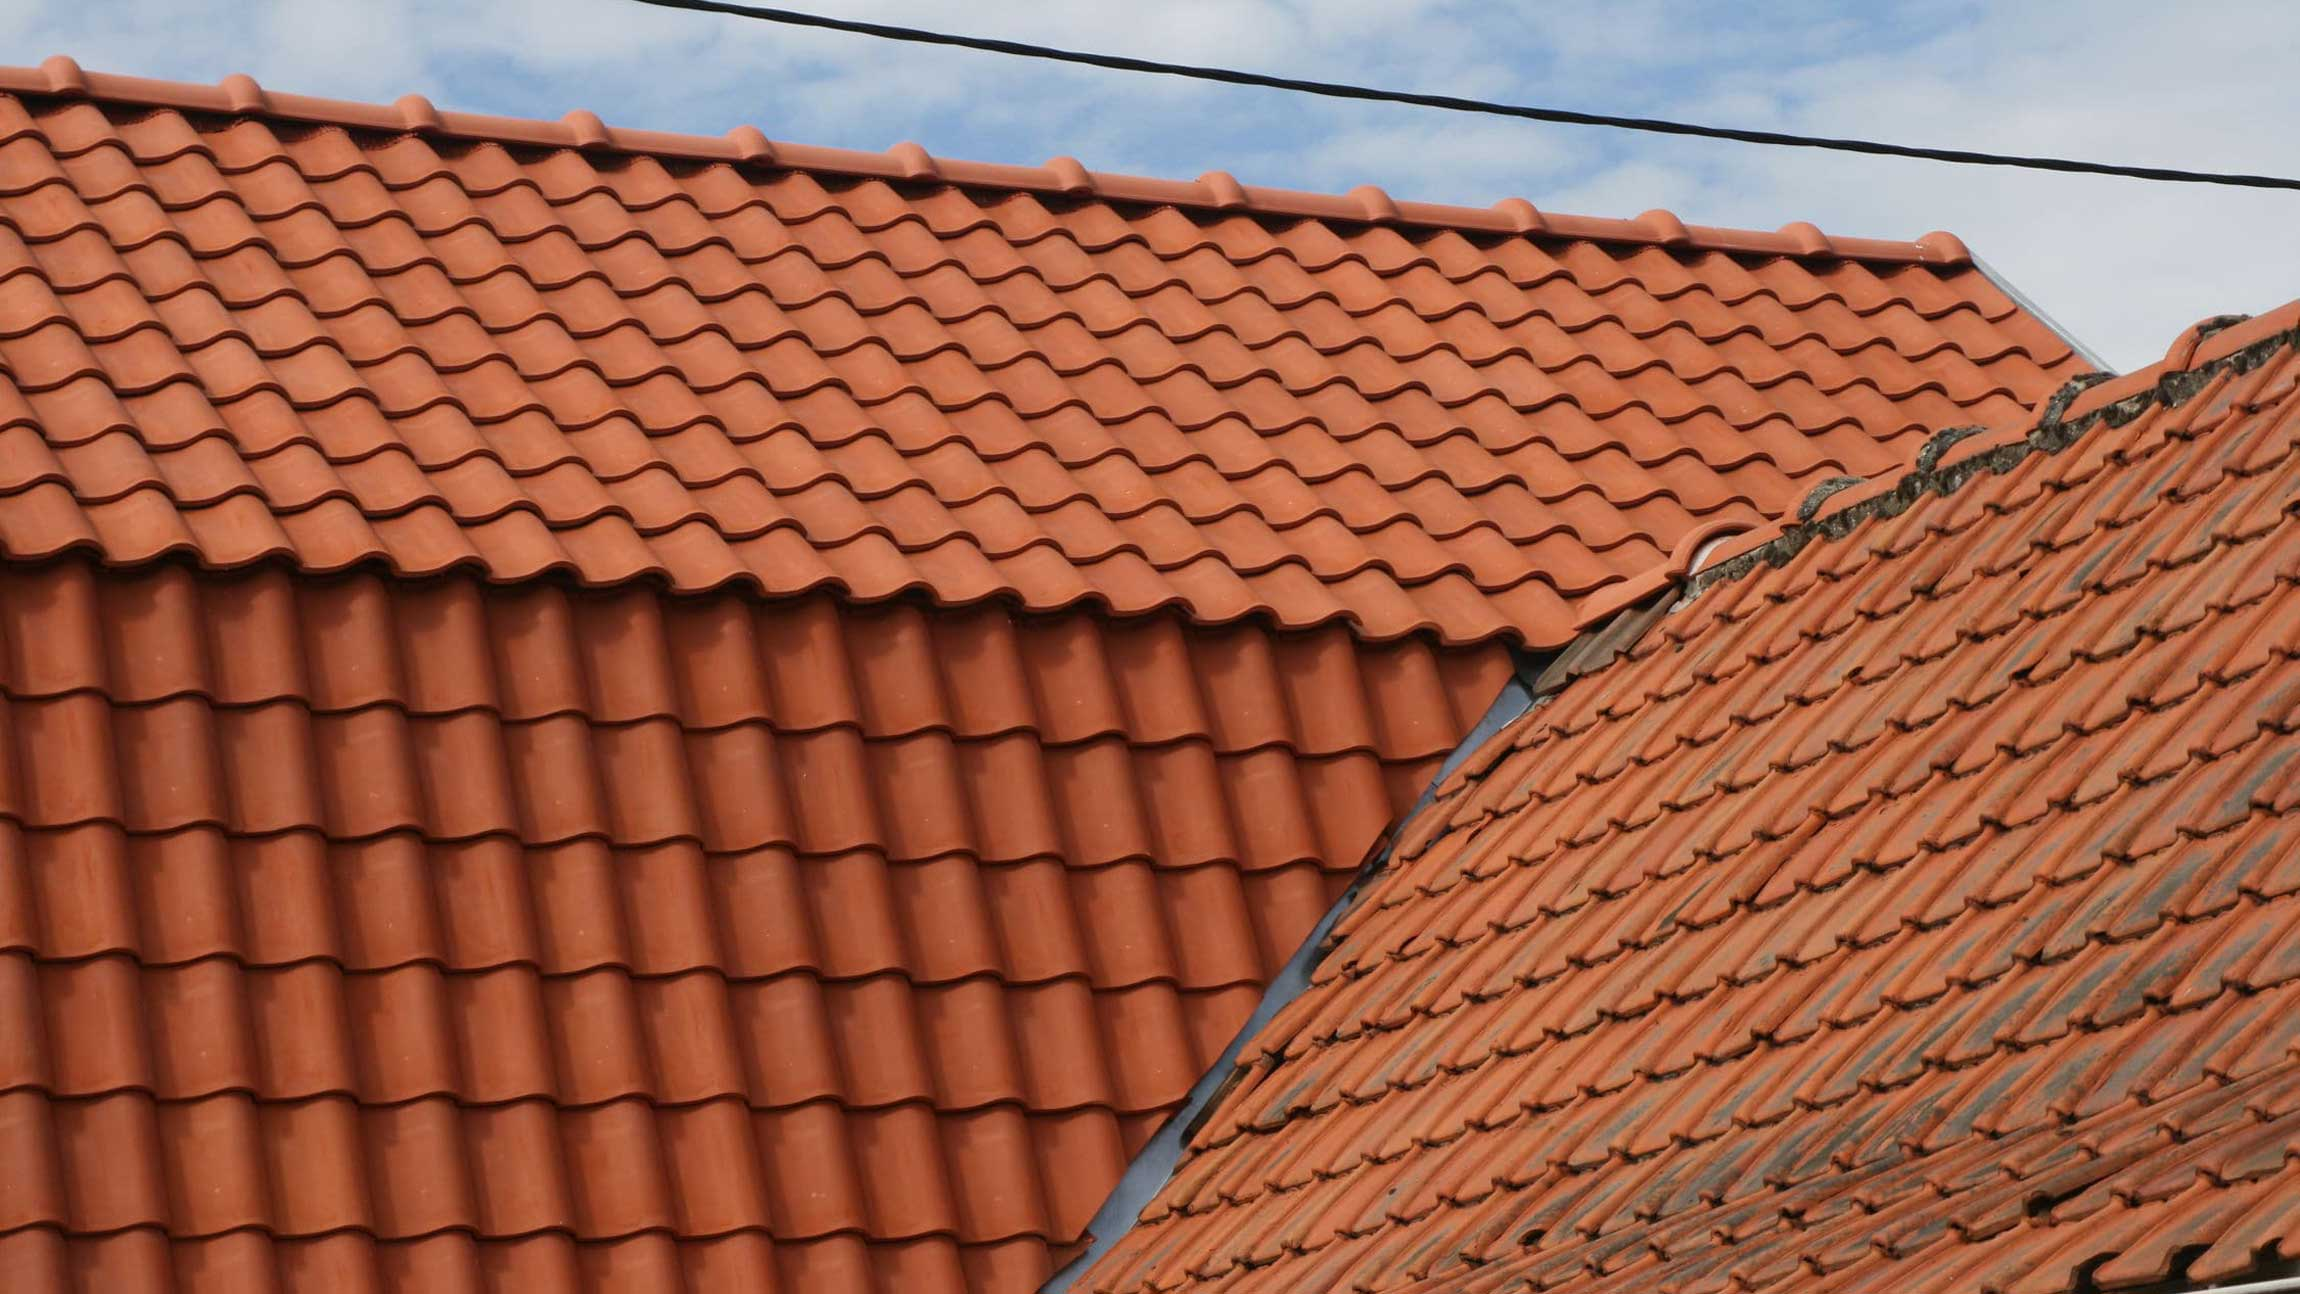 Marley Eternit Roman Clay Tiles Western Counties Roofing